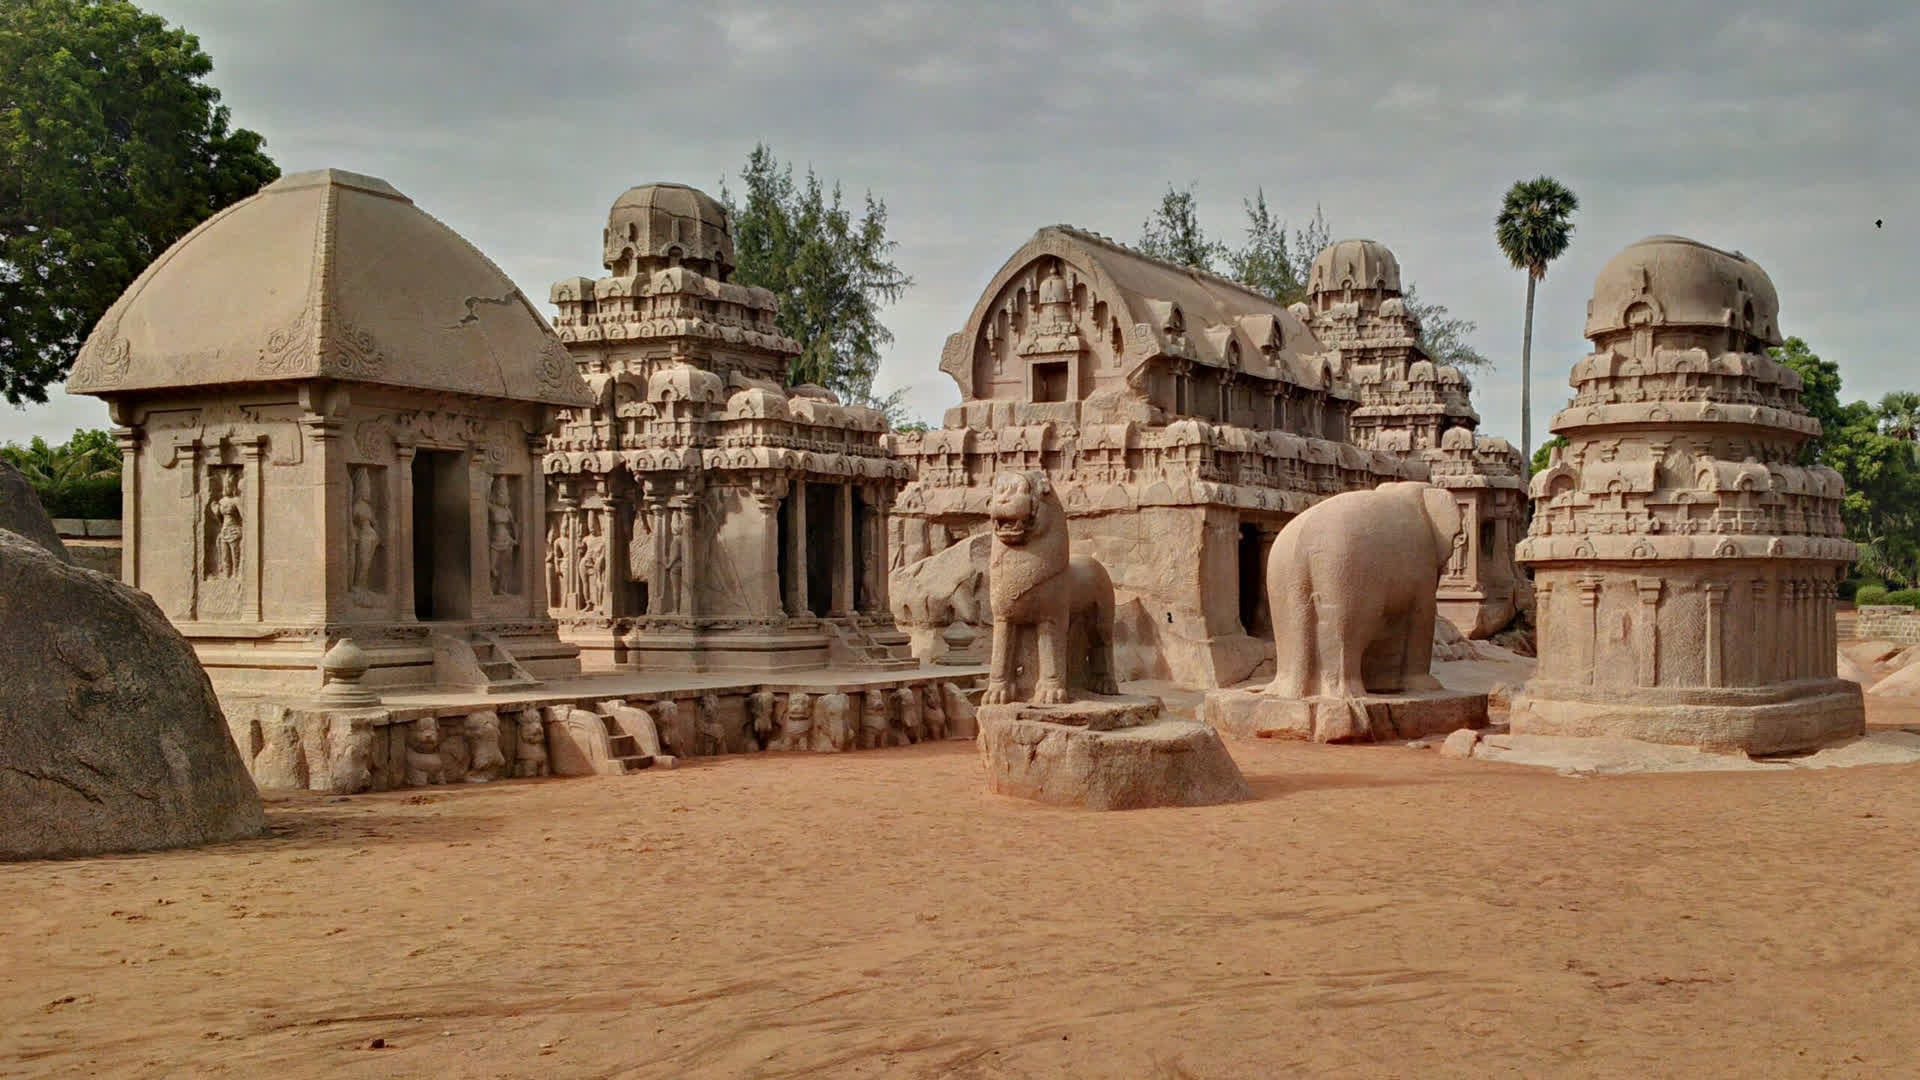 Pallavas & the Tale of Two Cities